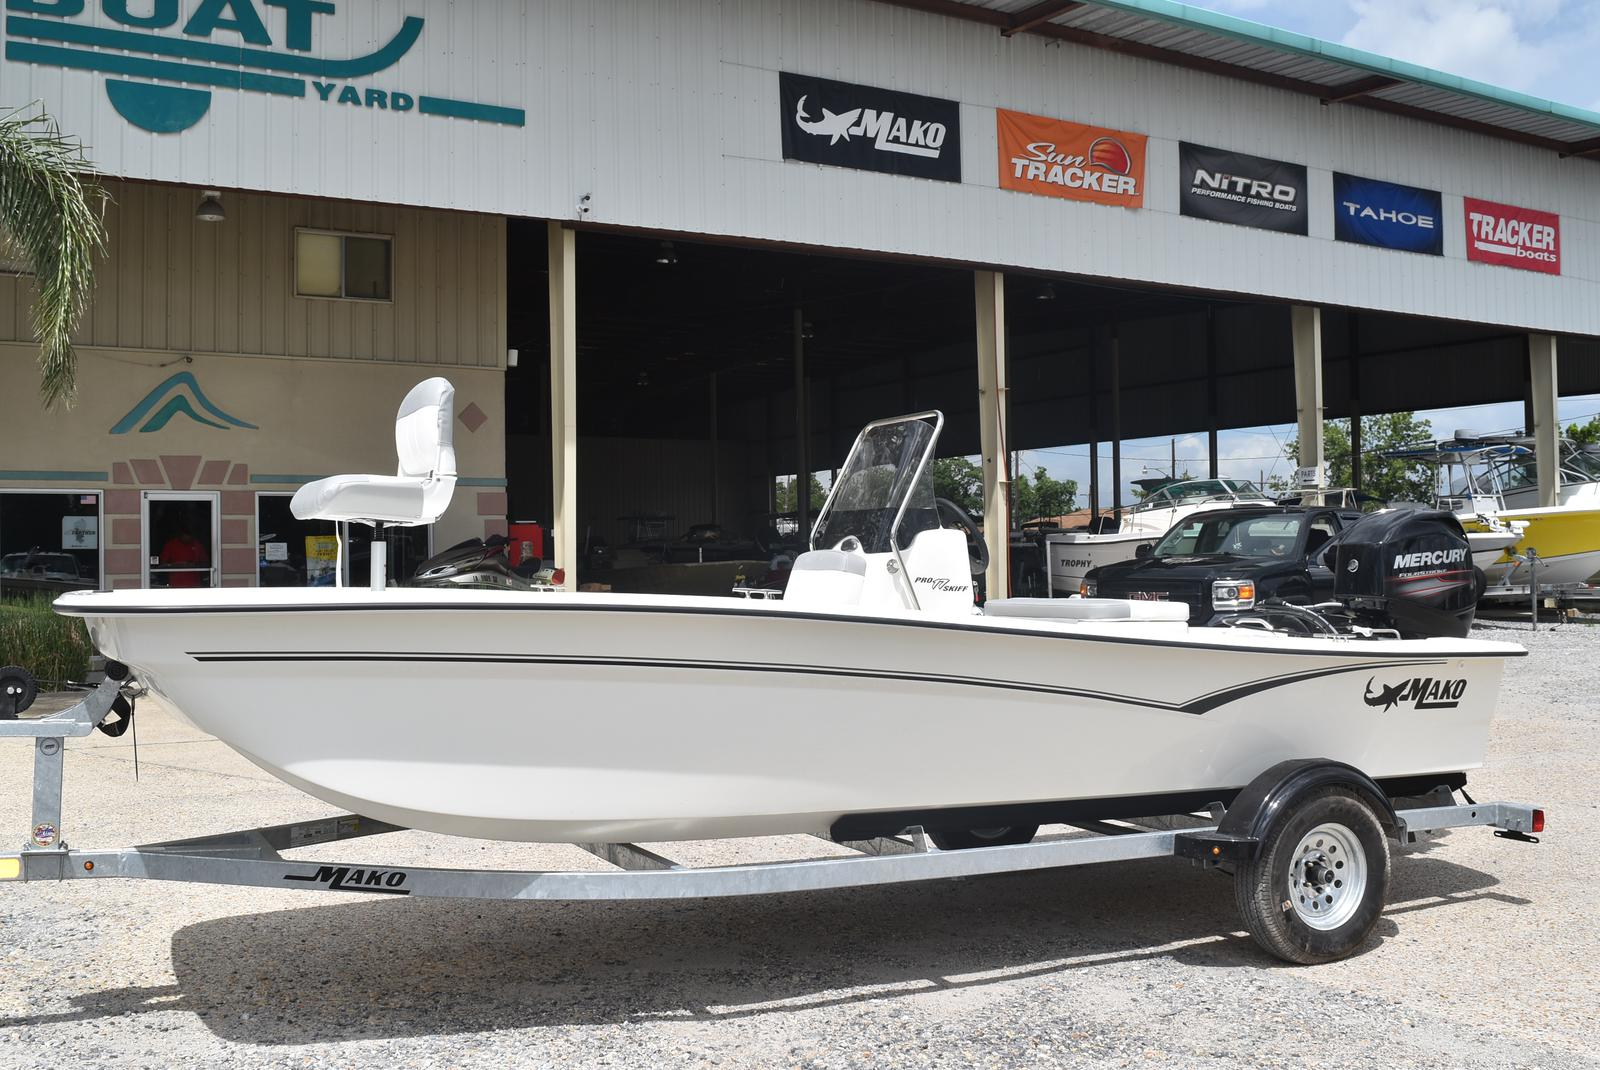 2020 Mako boat for sale, model of the boat is Pro Skiff 17, 75 ELPT & Image # 143 of 702